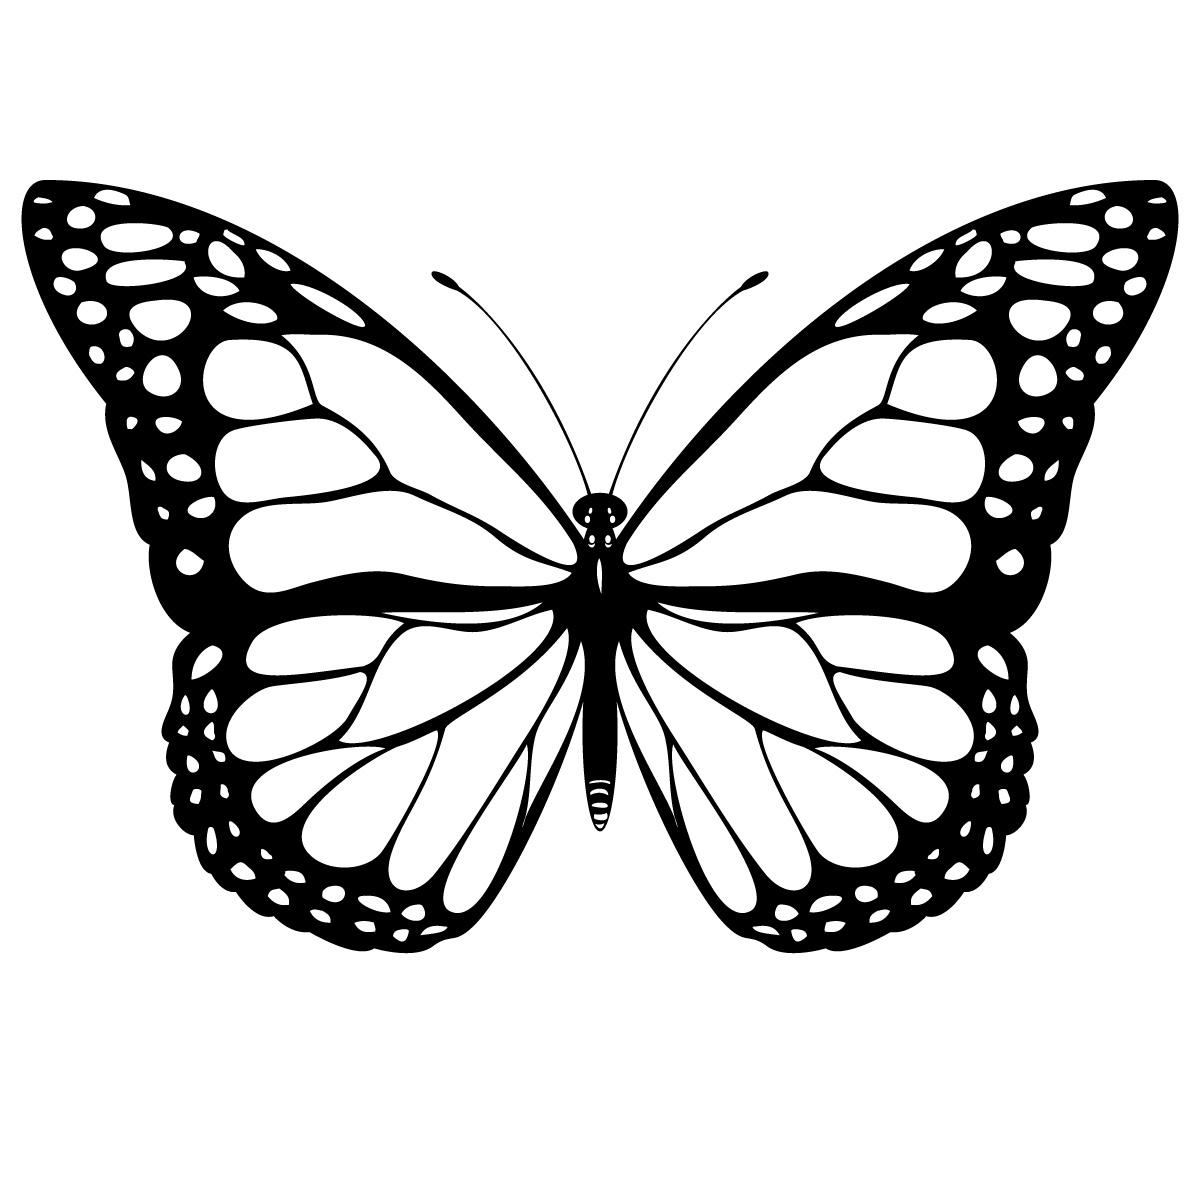 1200x1200 Outline Drawing Of A Butterfly Art Projects For Kids Free